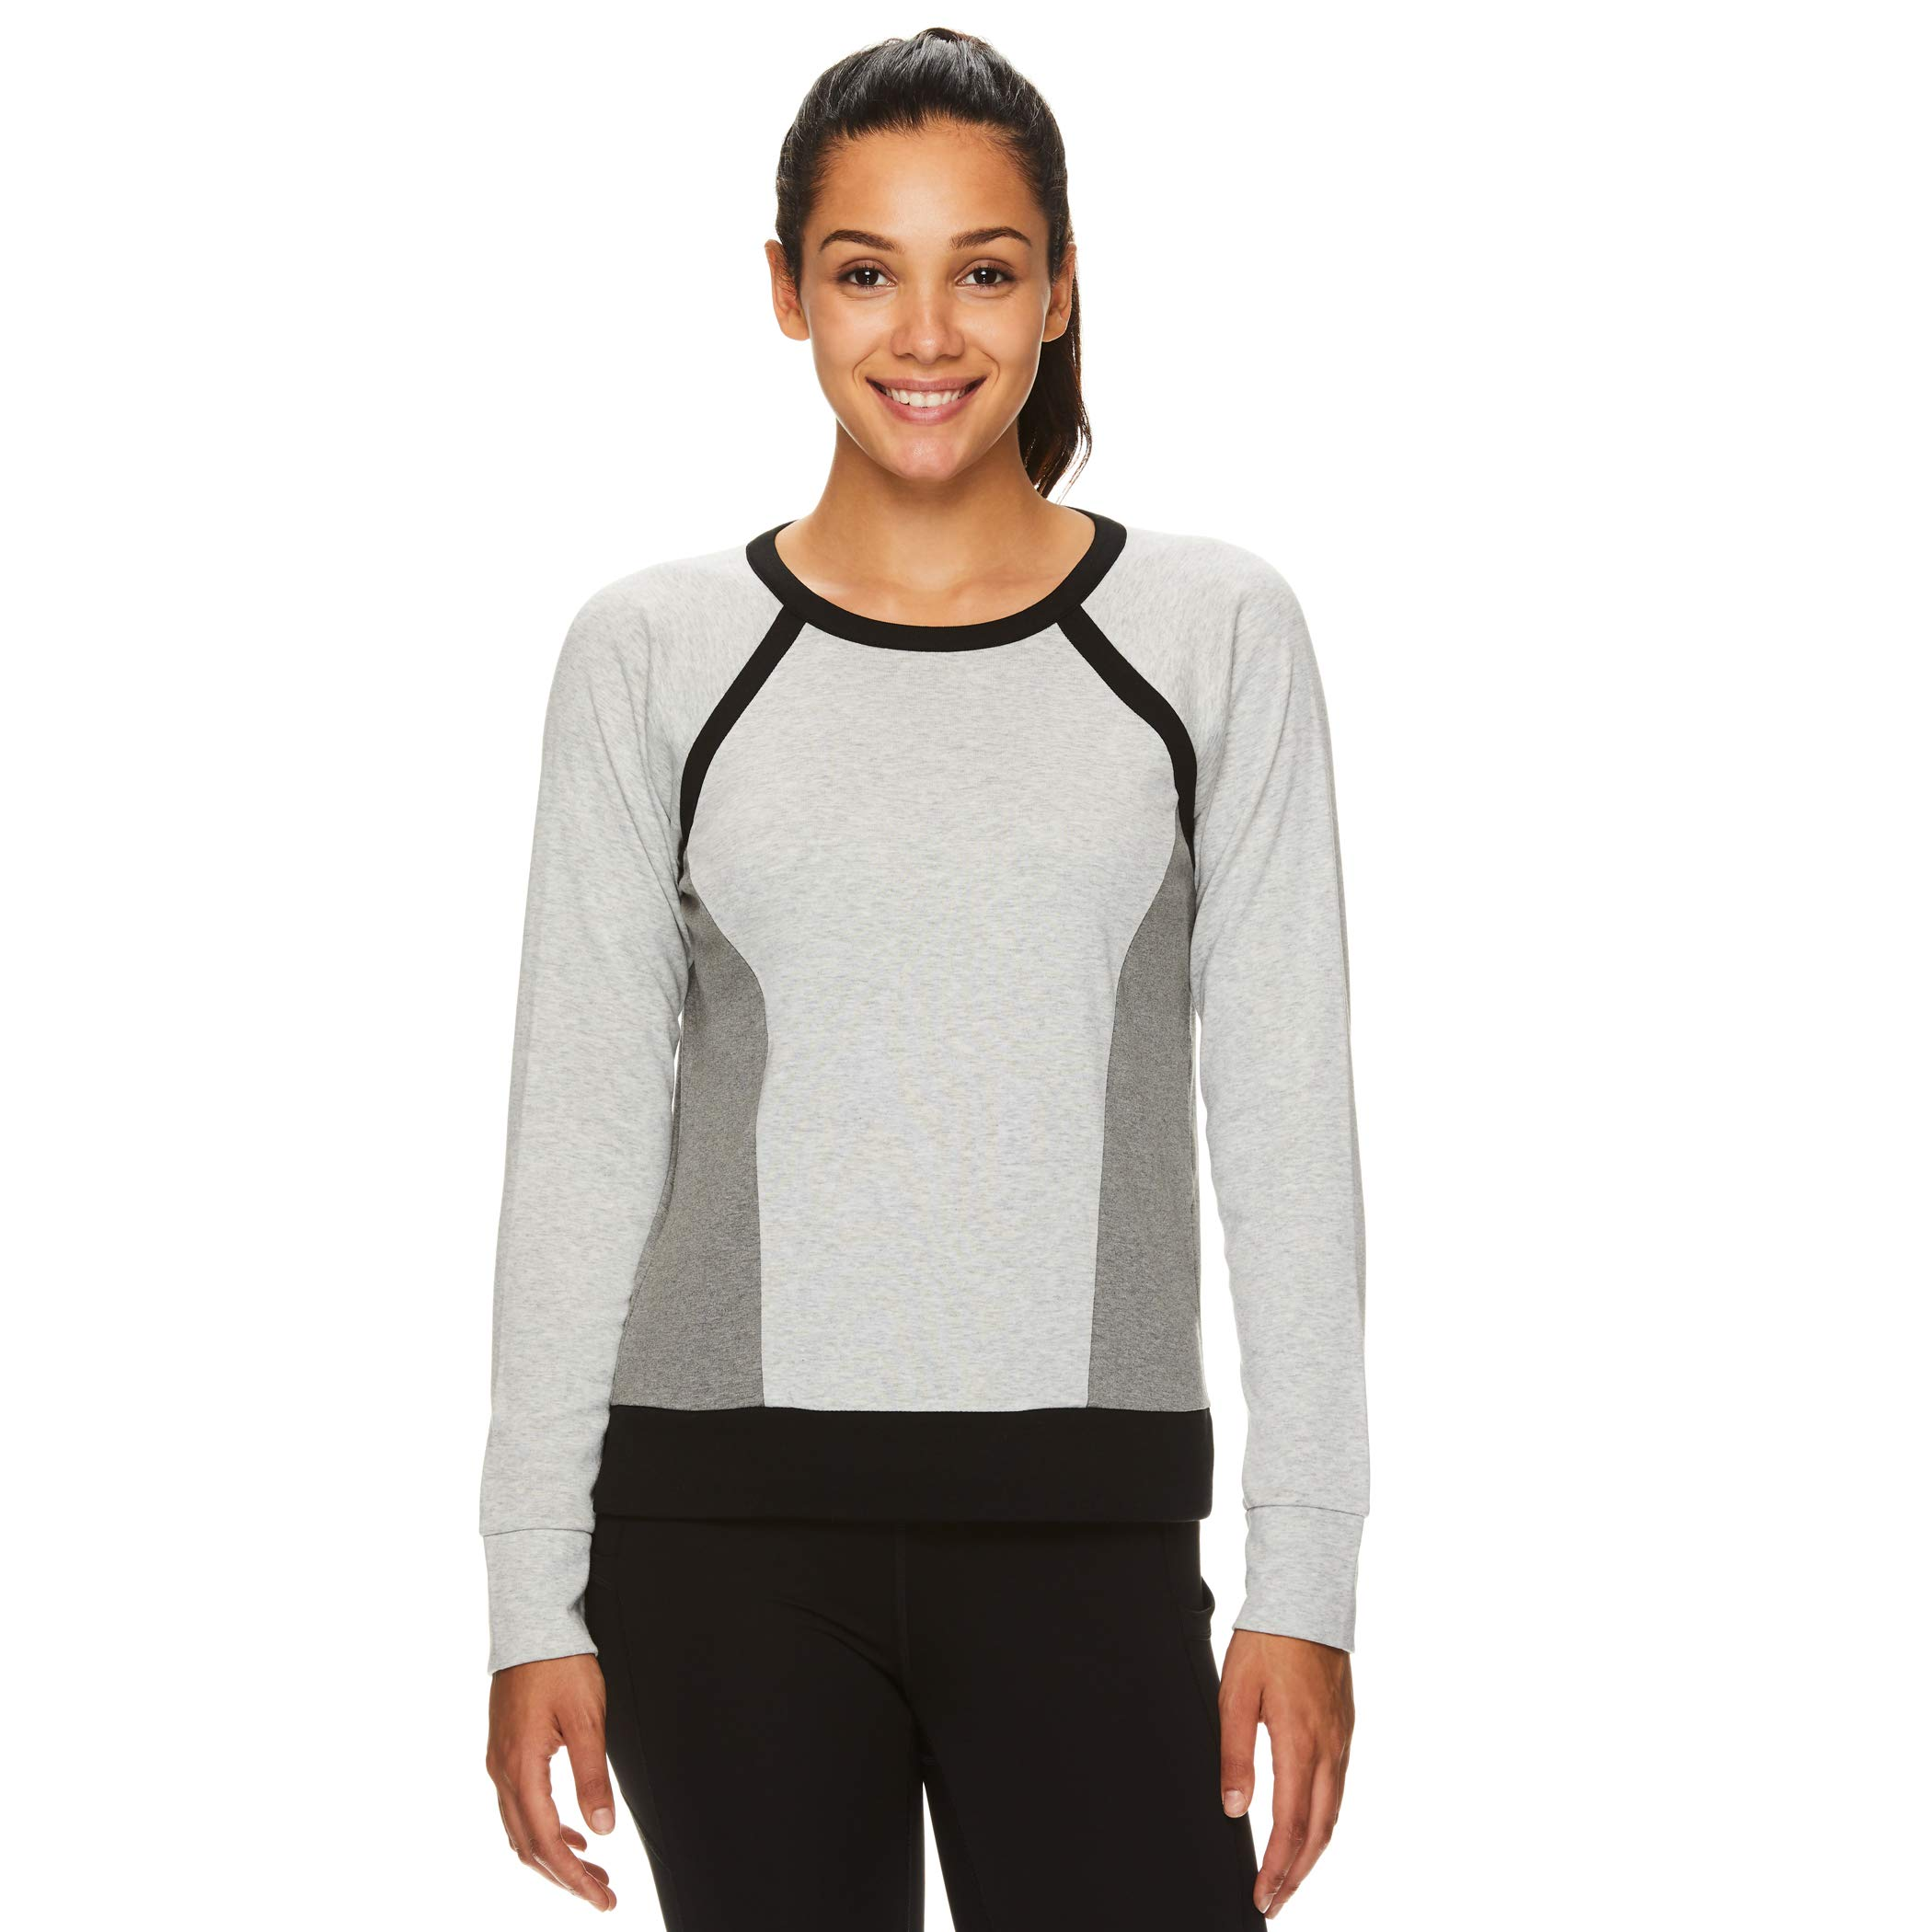 Gaiam Women's Pullover Yoga Sweatshirt - Lightweight Cropped Long Sleeve Athleisure Sweater - Houston Grey Heather, Small by Gaiam